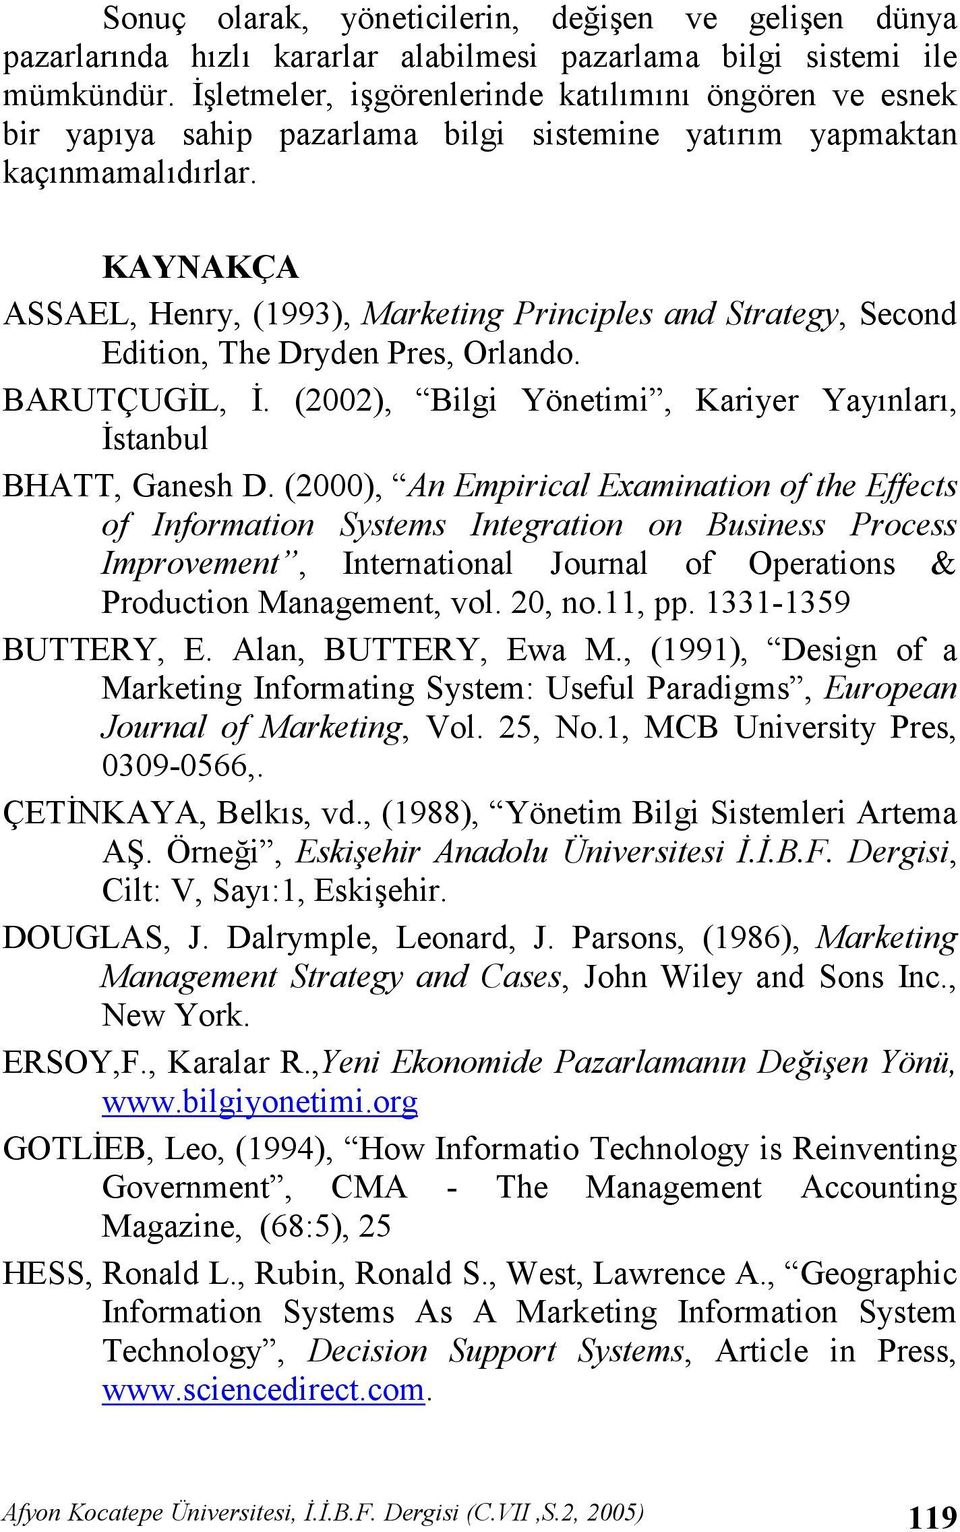 KAYNAKÇA ASSAEL, Henry, (1993), Marketing Principles and Strategy, Second Edition, The Dryden Pres, Orlando. BARUTÇUG0L, 0. (2002), Bilgi Yönetimi, Kariyer Yaynlar, 0stanbul BHATT, Ganesh D.